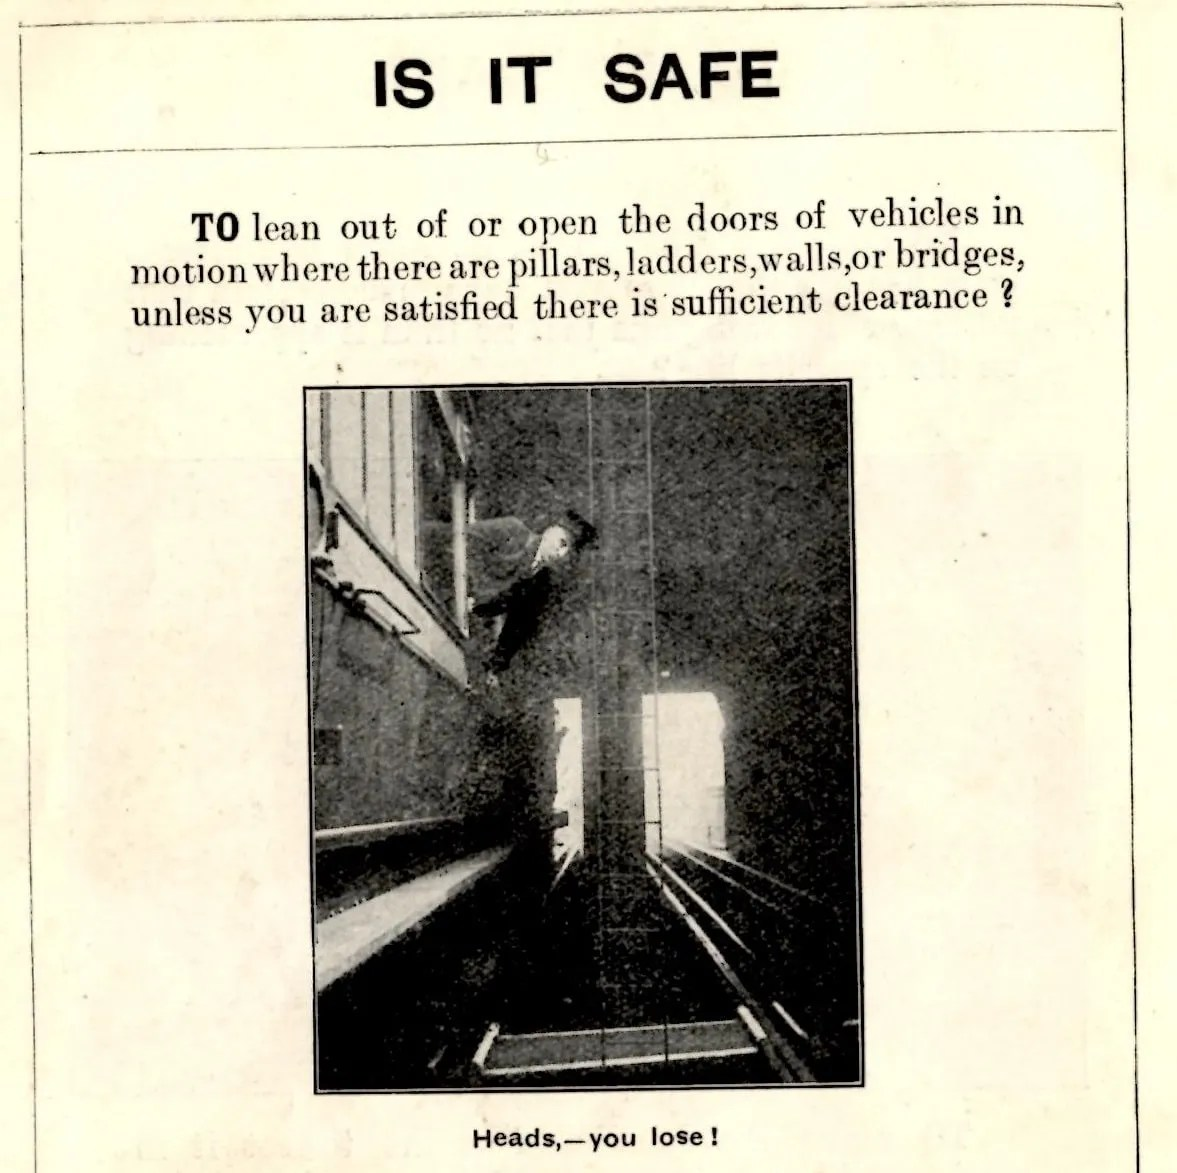 Historical railway accident warning poster